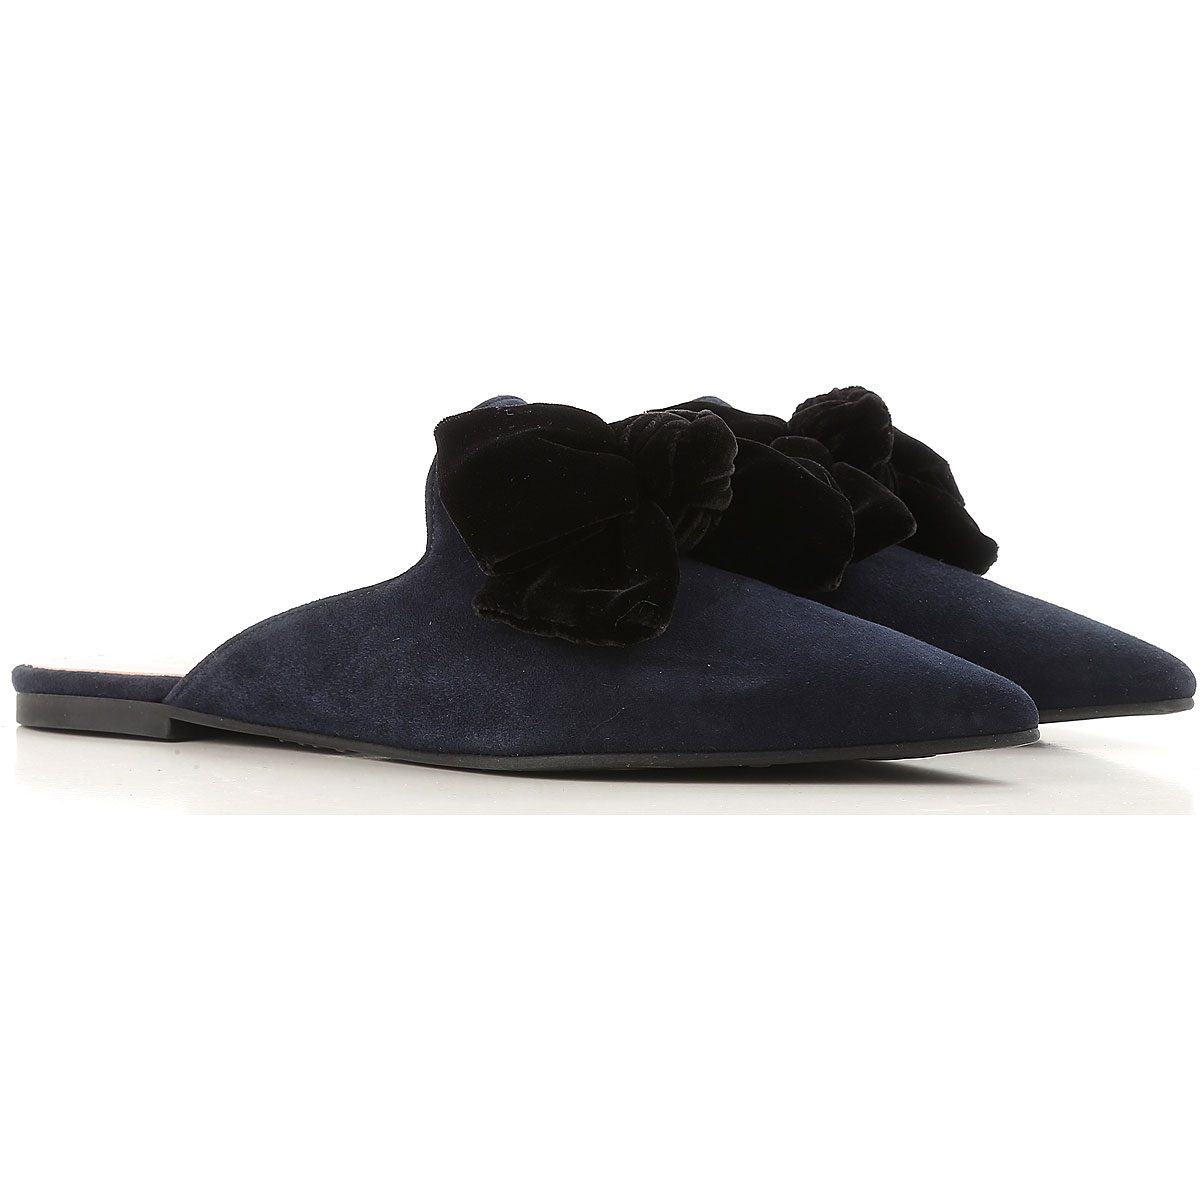 Image of Pretty Ballerinas Ballet Flats Ballerina Shoes for Women On Sale in Outlet, Dark Blue, Calfskin Leather, 2017, 11 8.5 9